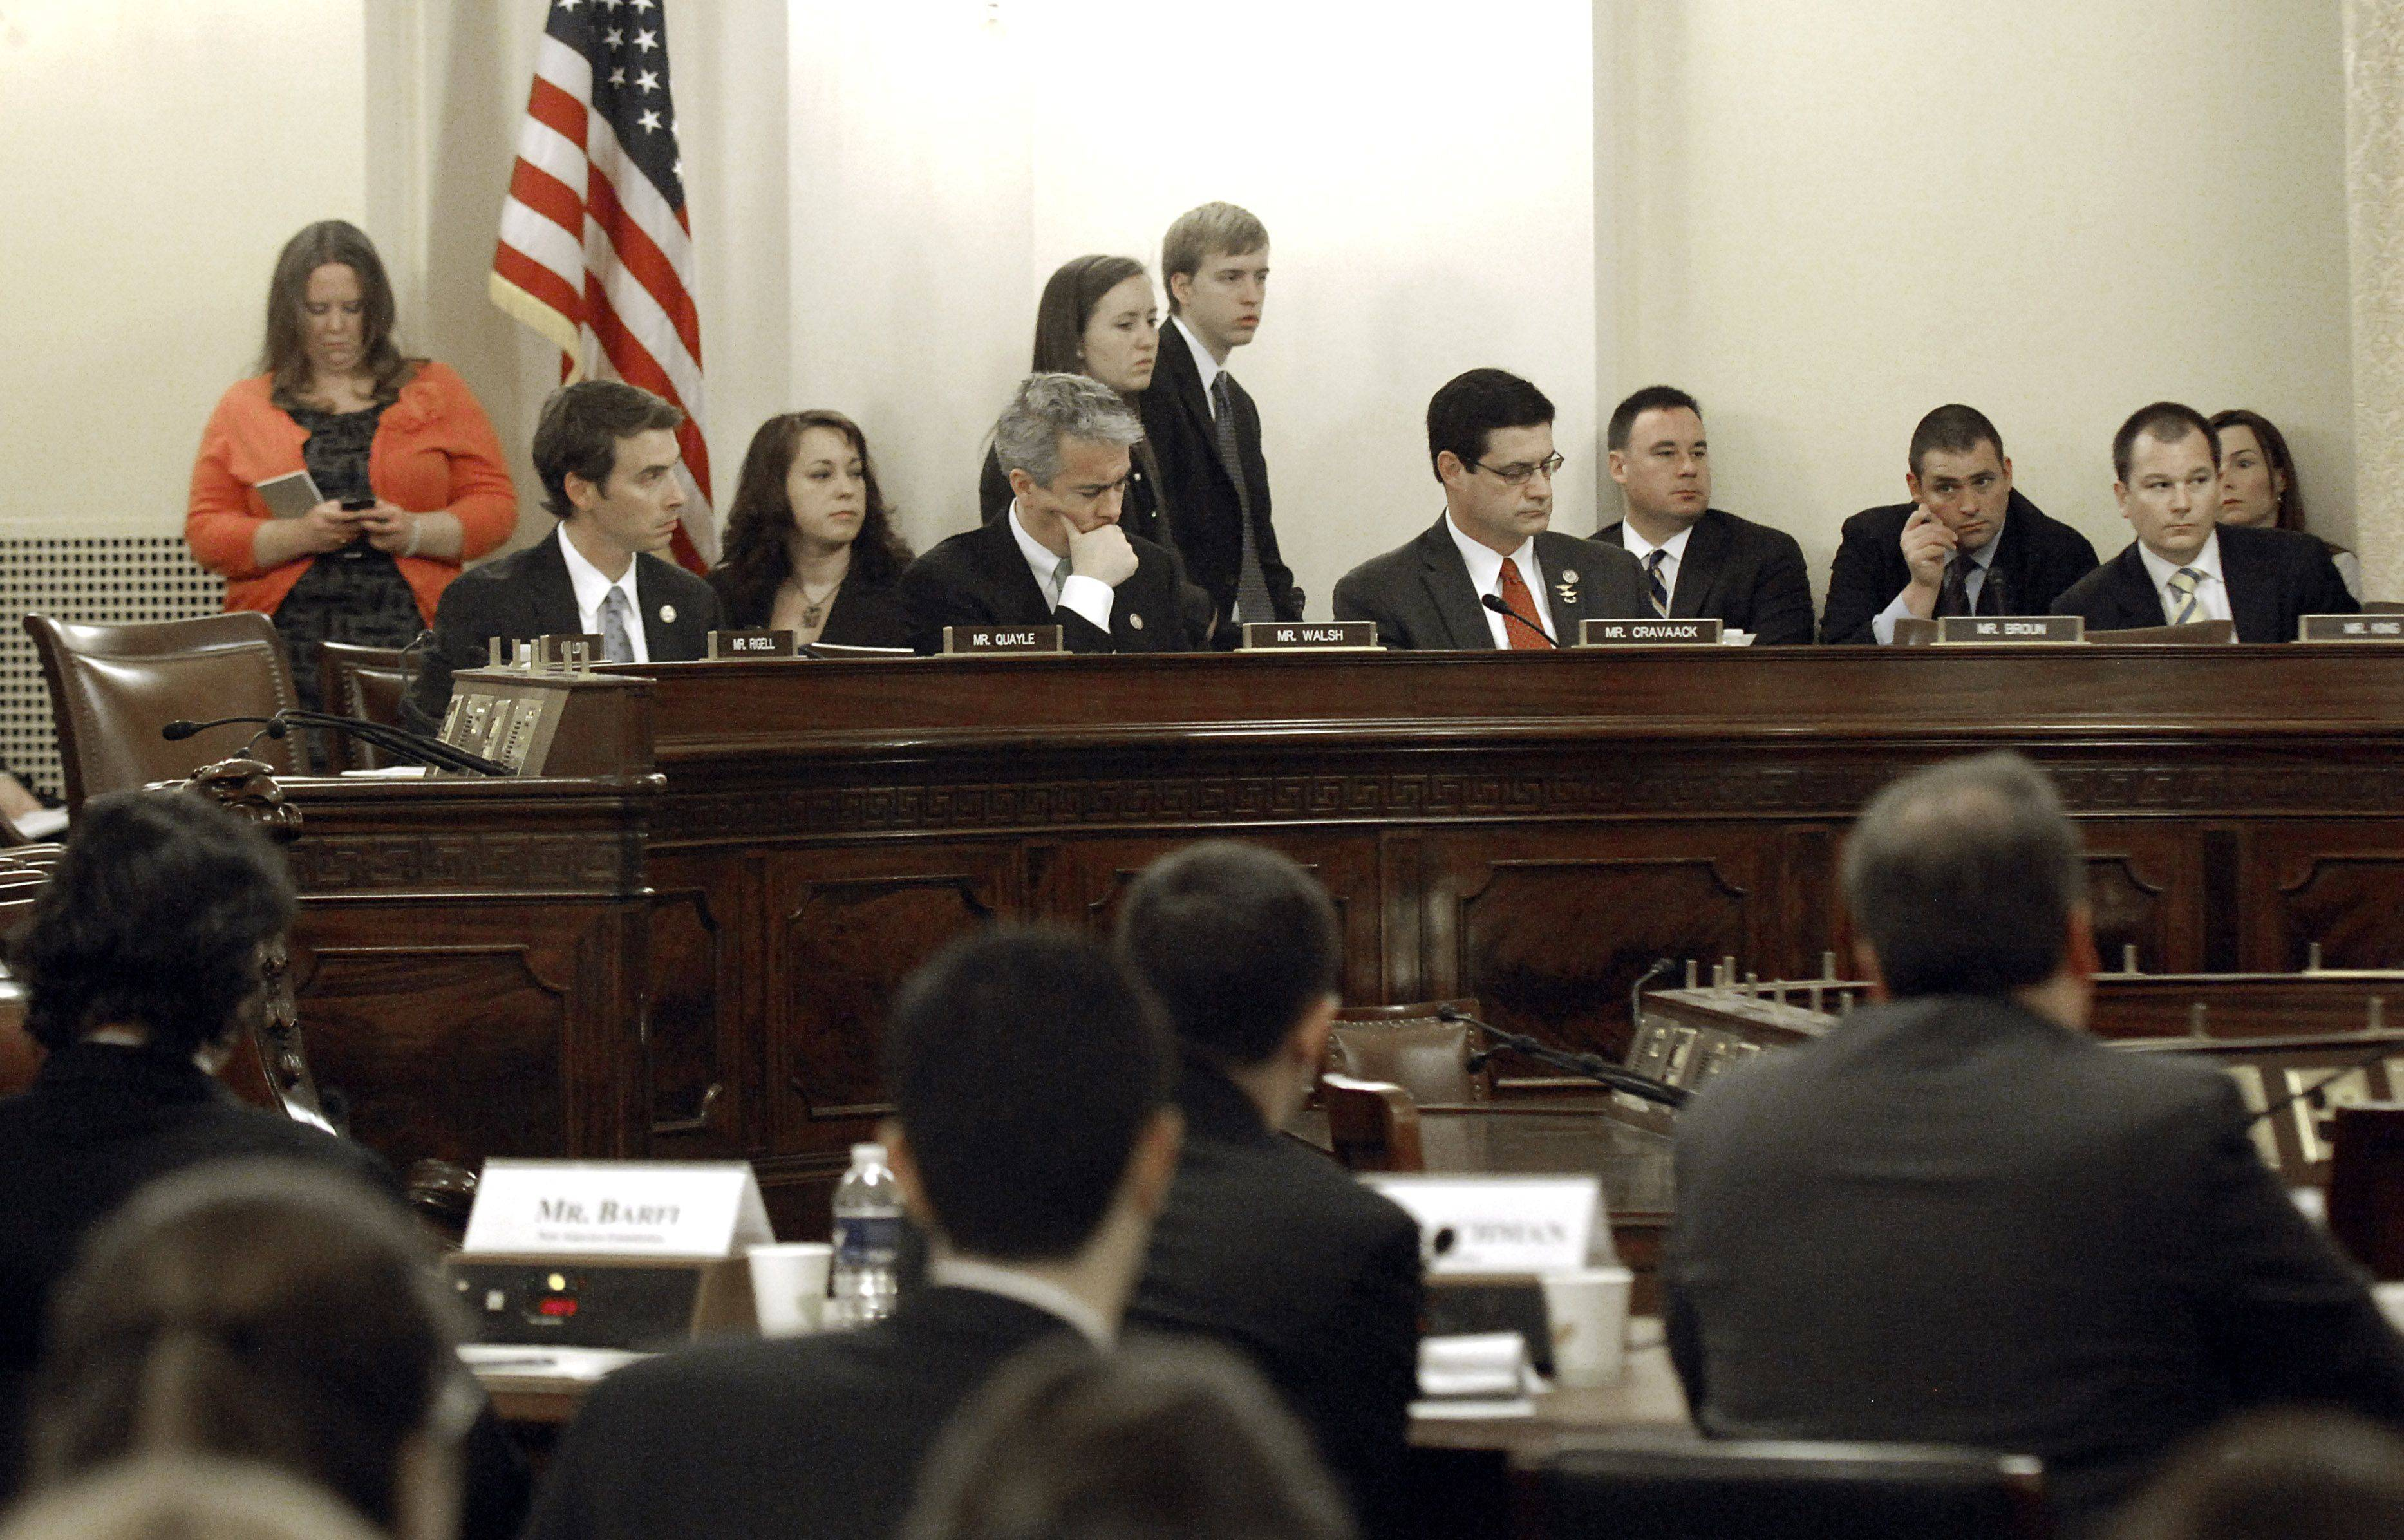 Congressman Joe Walsh sits in a Homeland Security Committee meeting on Wednesday, March 2.